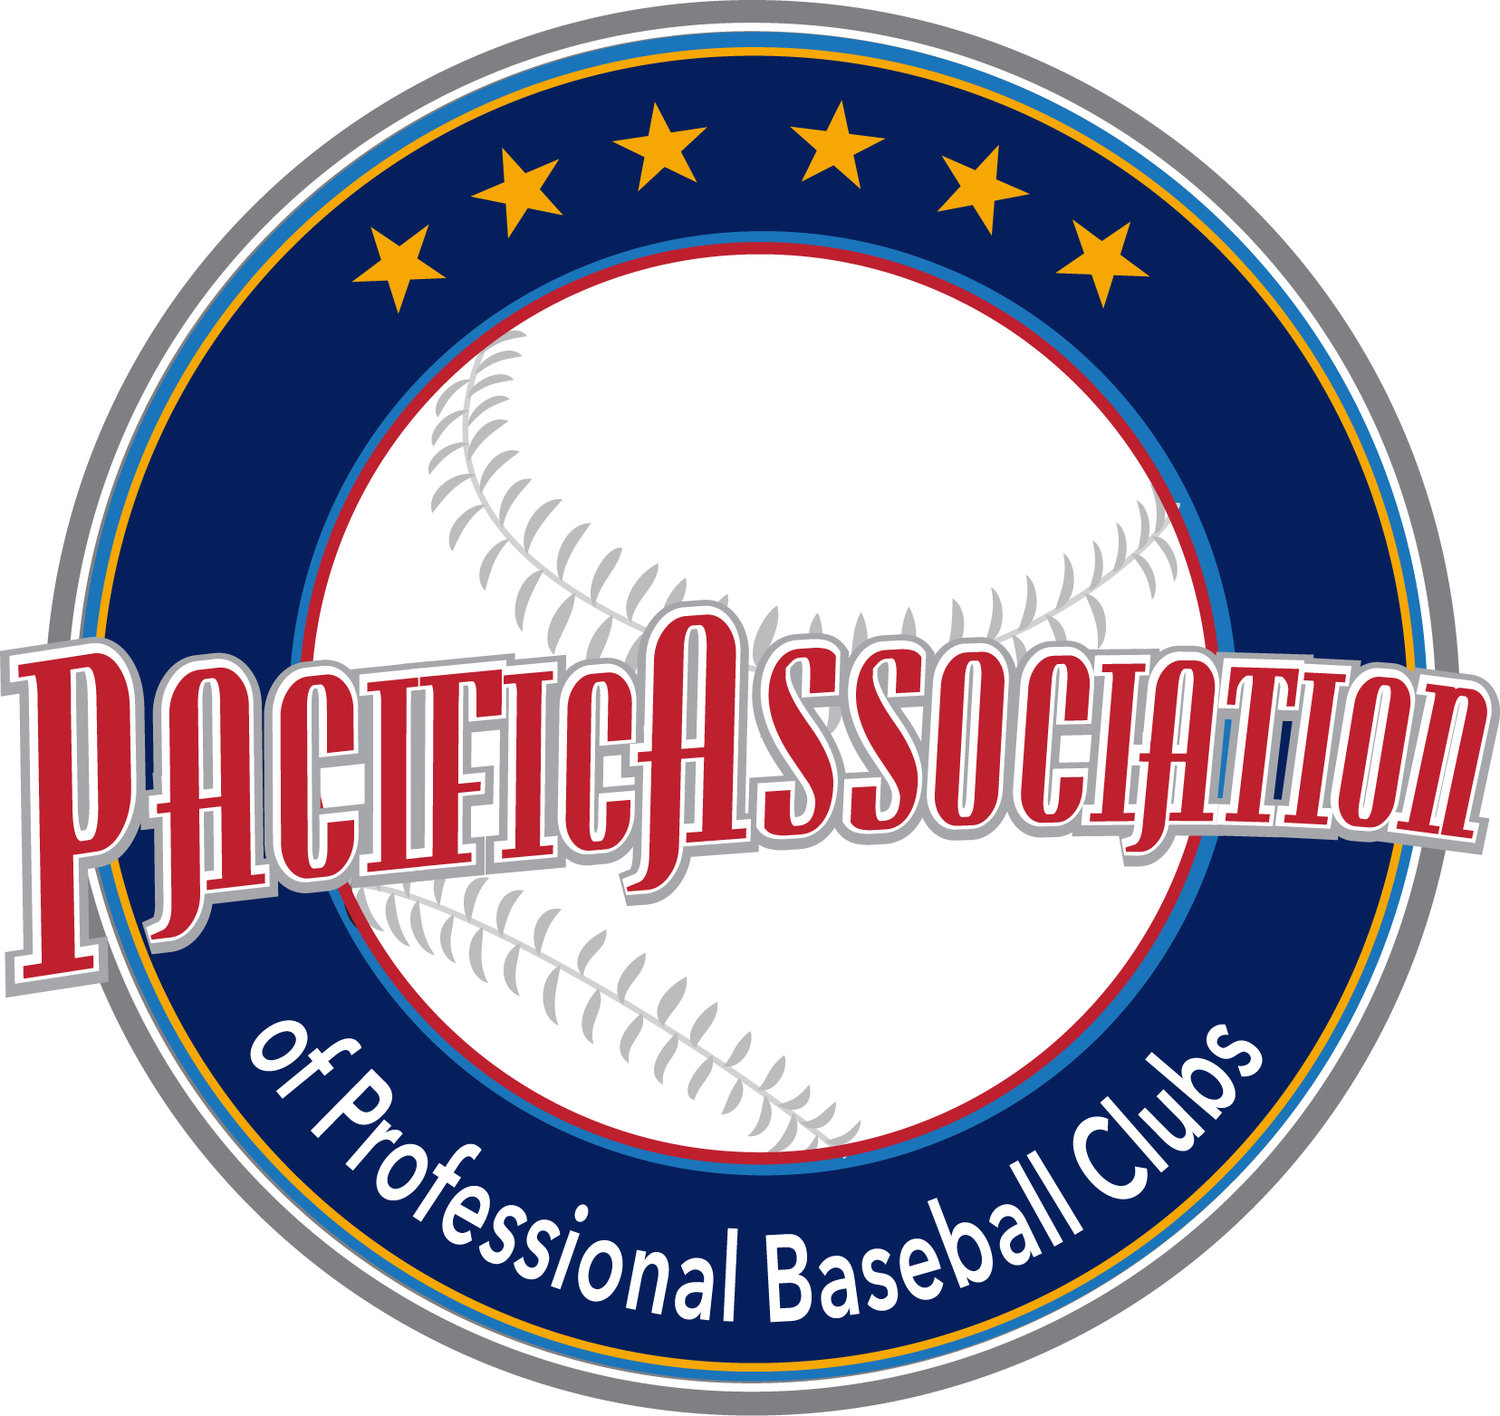 Pacific+Association+Logo+2018.jpg